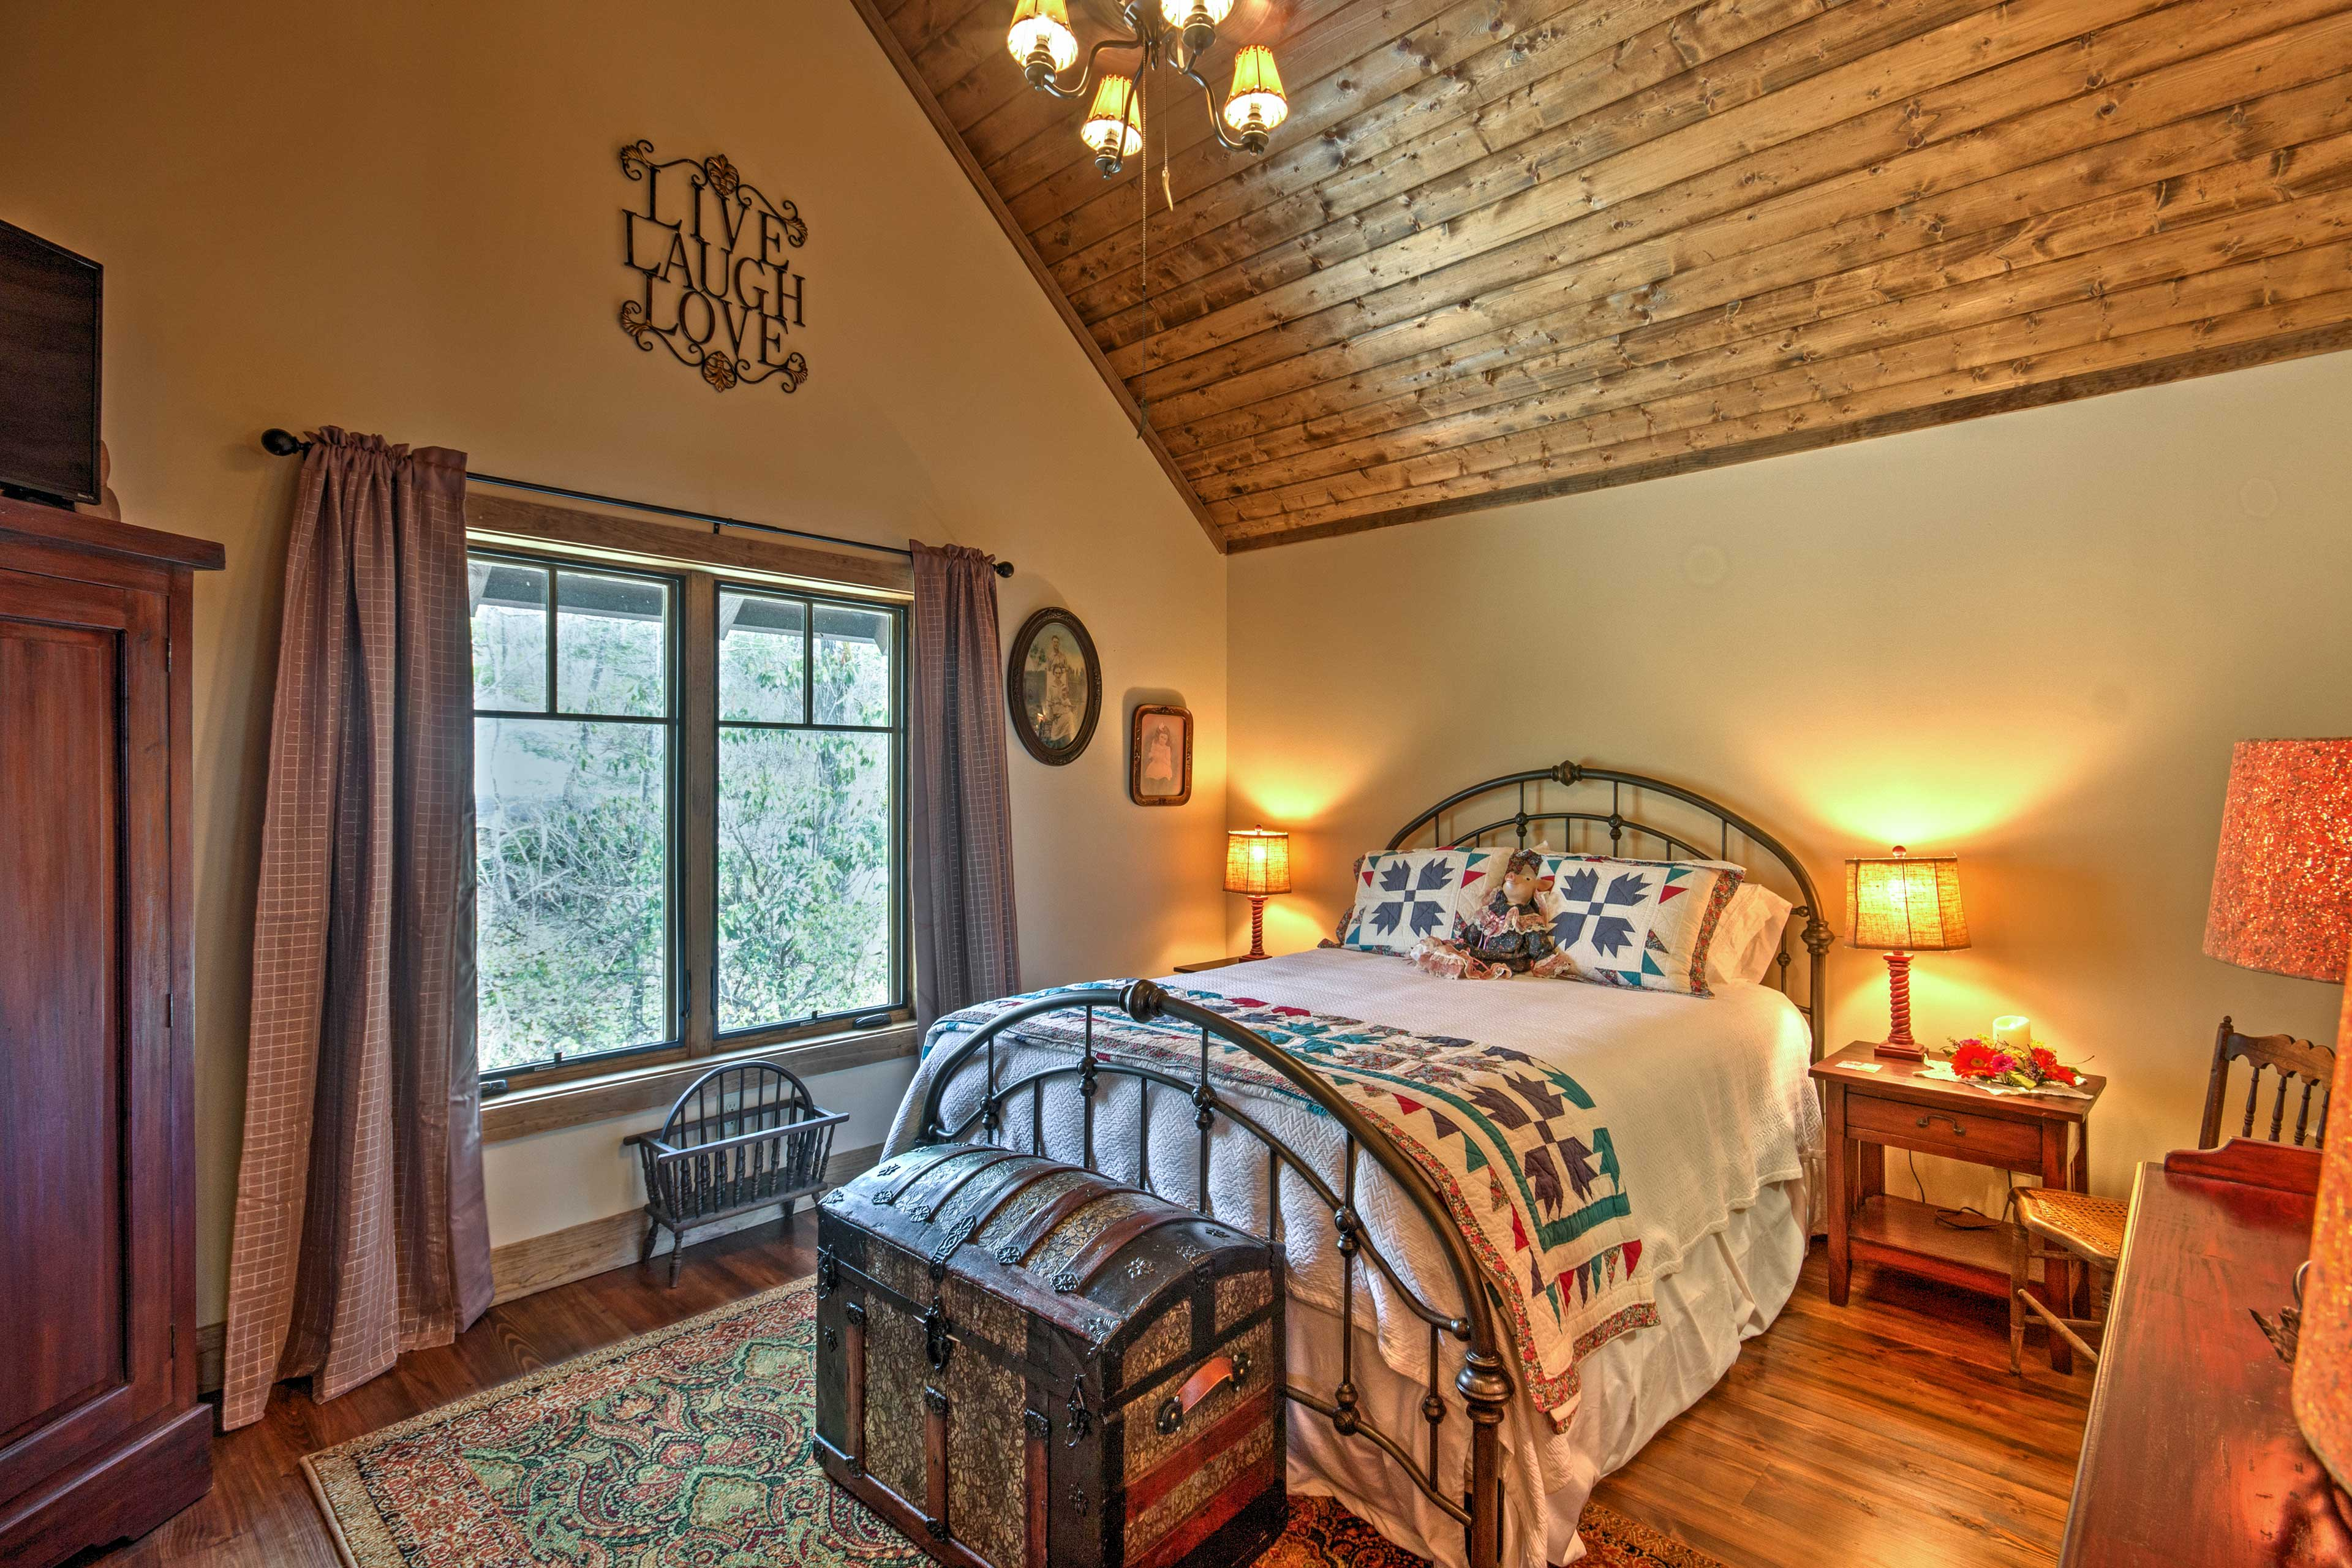 Dream of tomorrows adventures in this spacious bedroom.